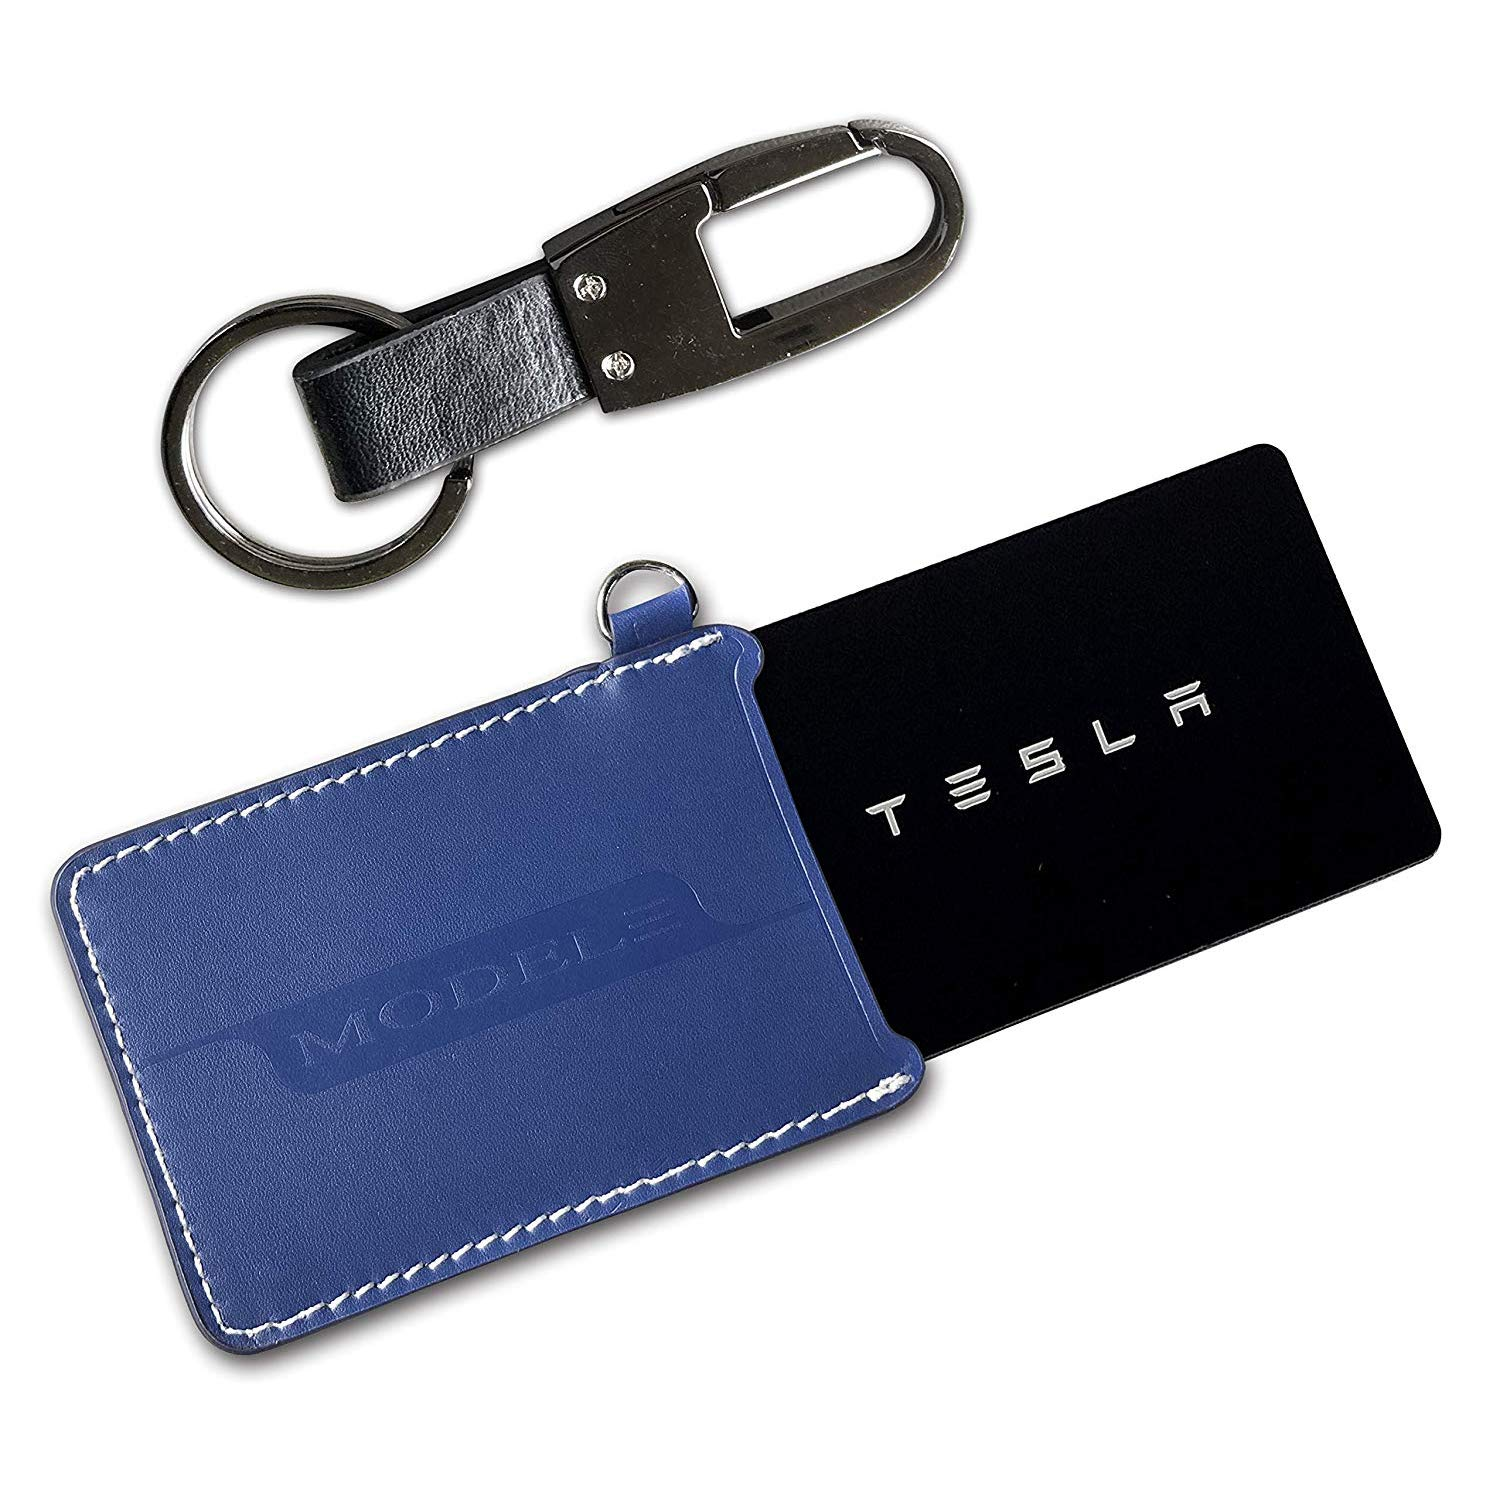 Blue Car Key Card Holder Protector Cover Key Fob Case Chain Key Ring Set for Tesla Model 3